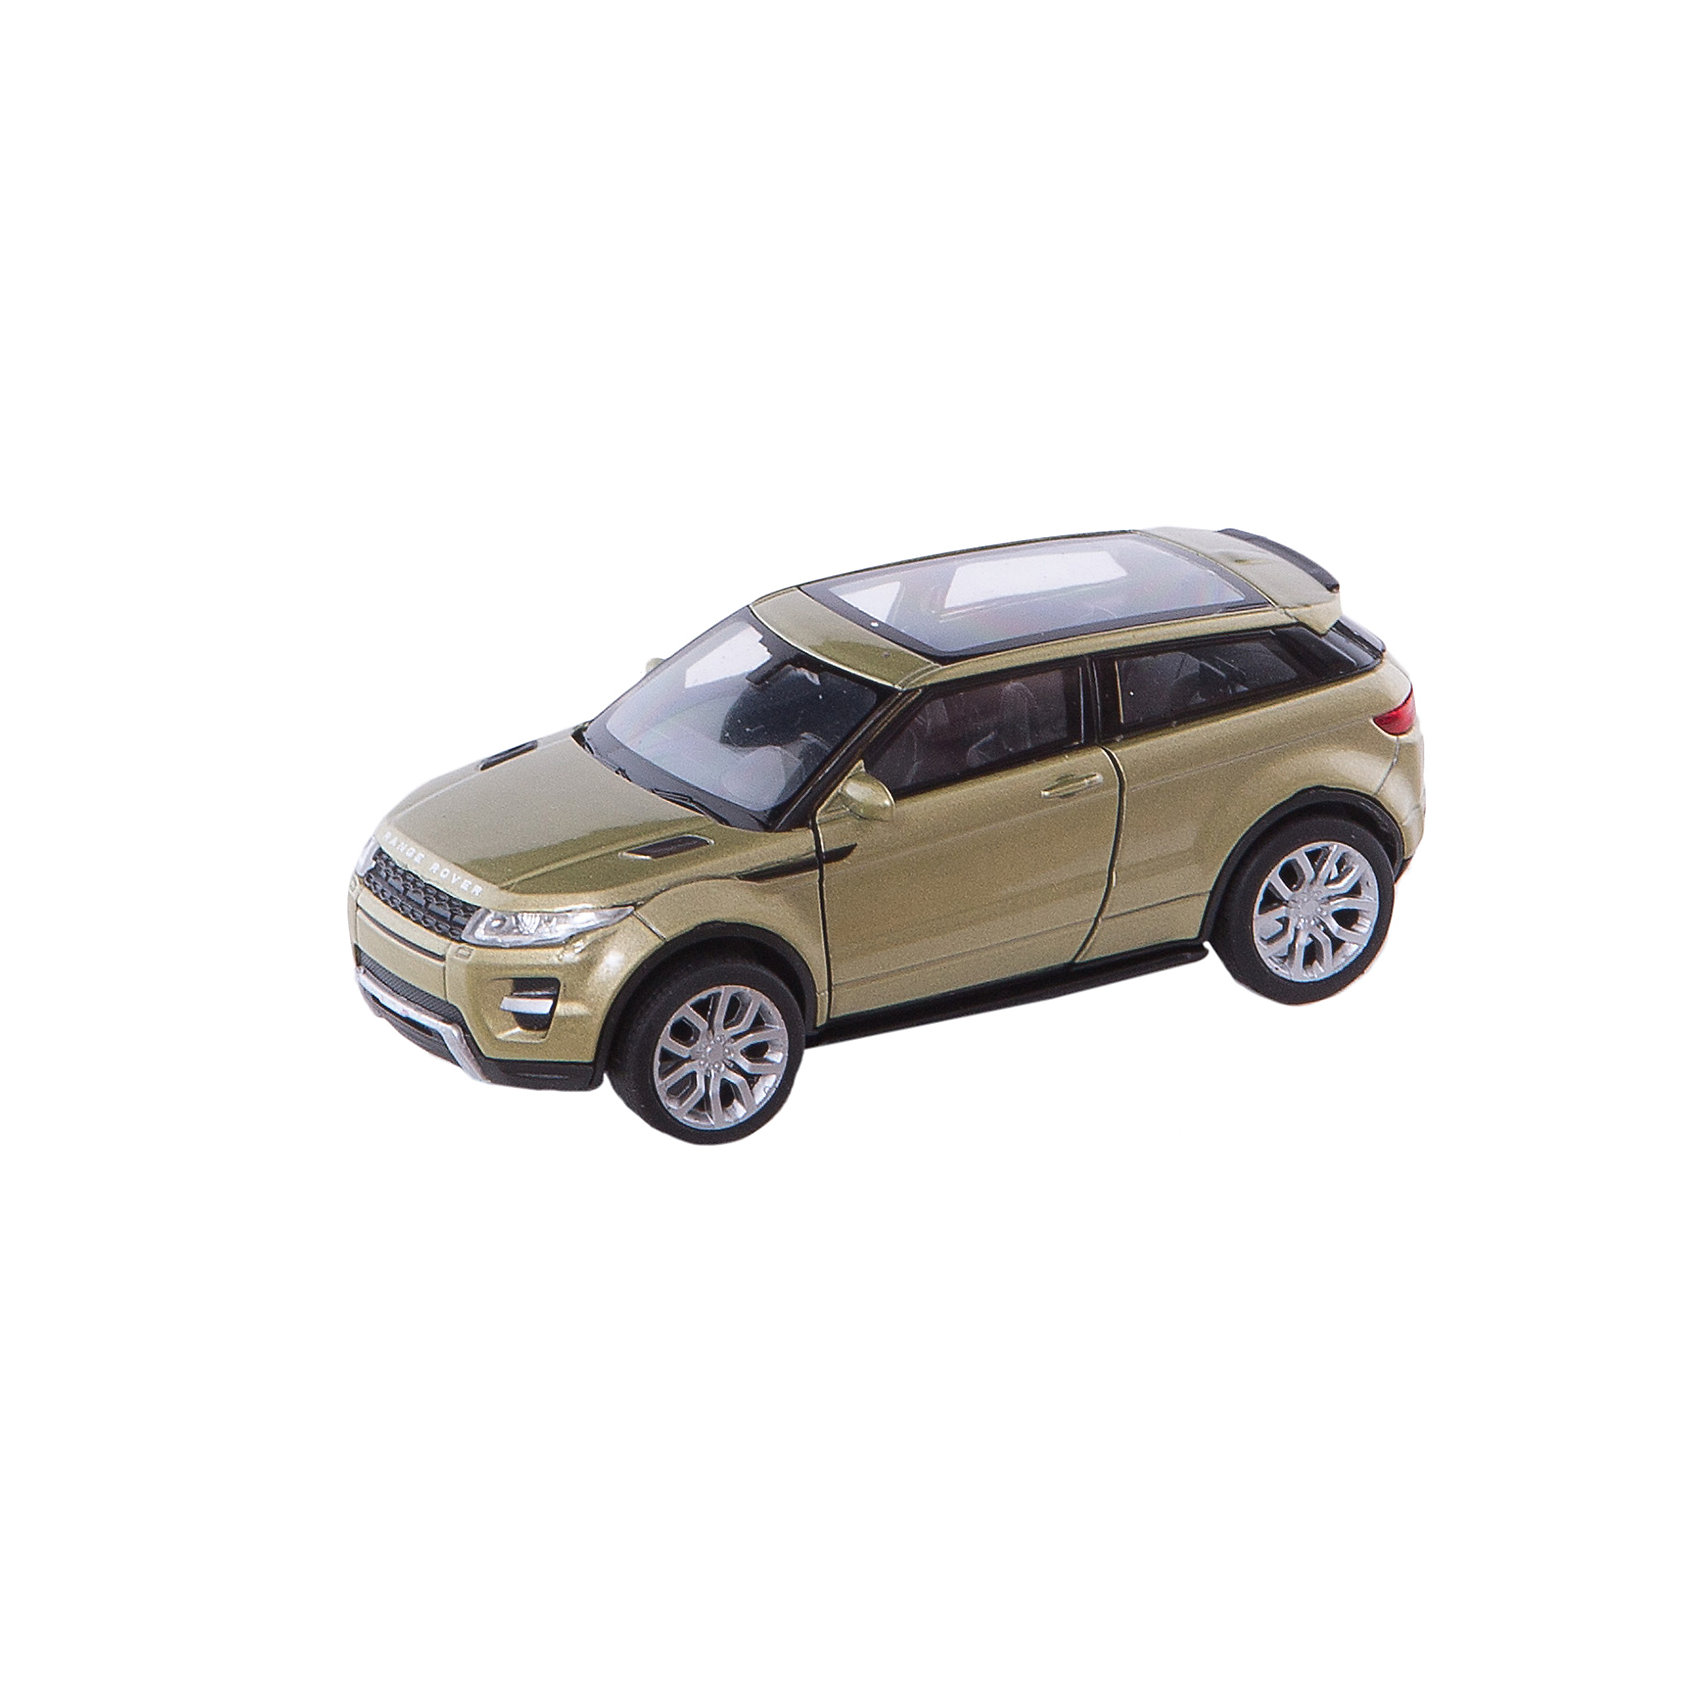 Disney Модель машины 1:34-39 Range Rover Evoque, Welly машина autotime range rover evoque 49947